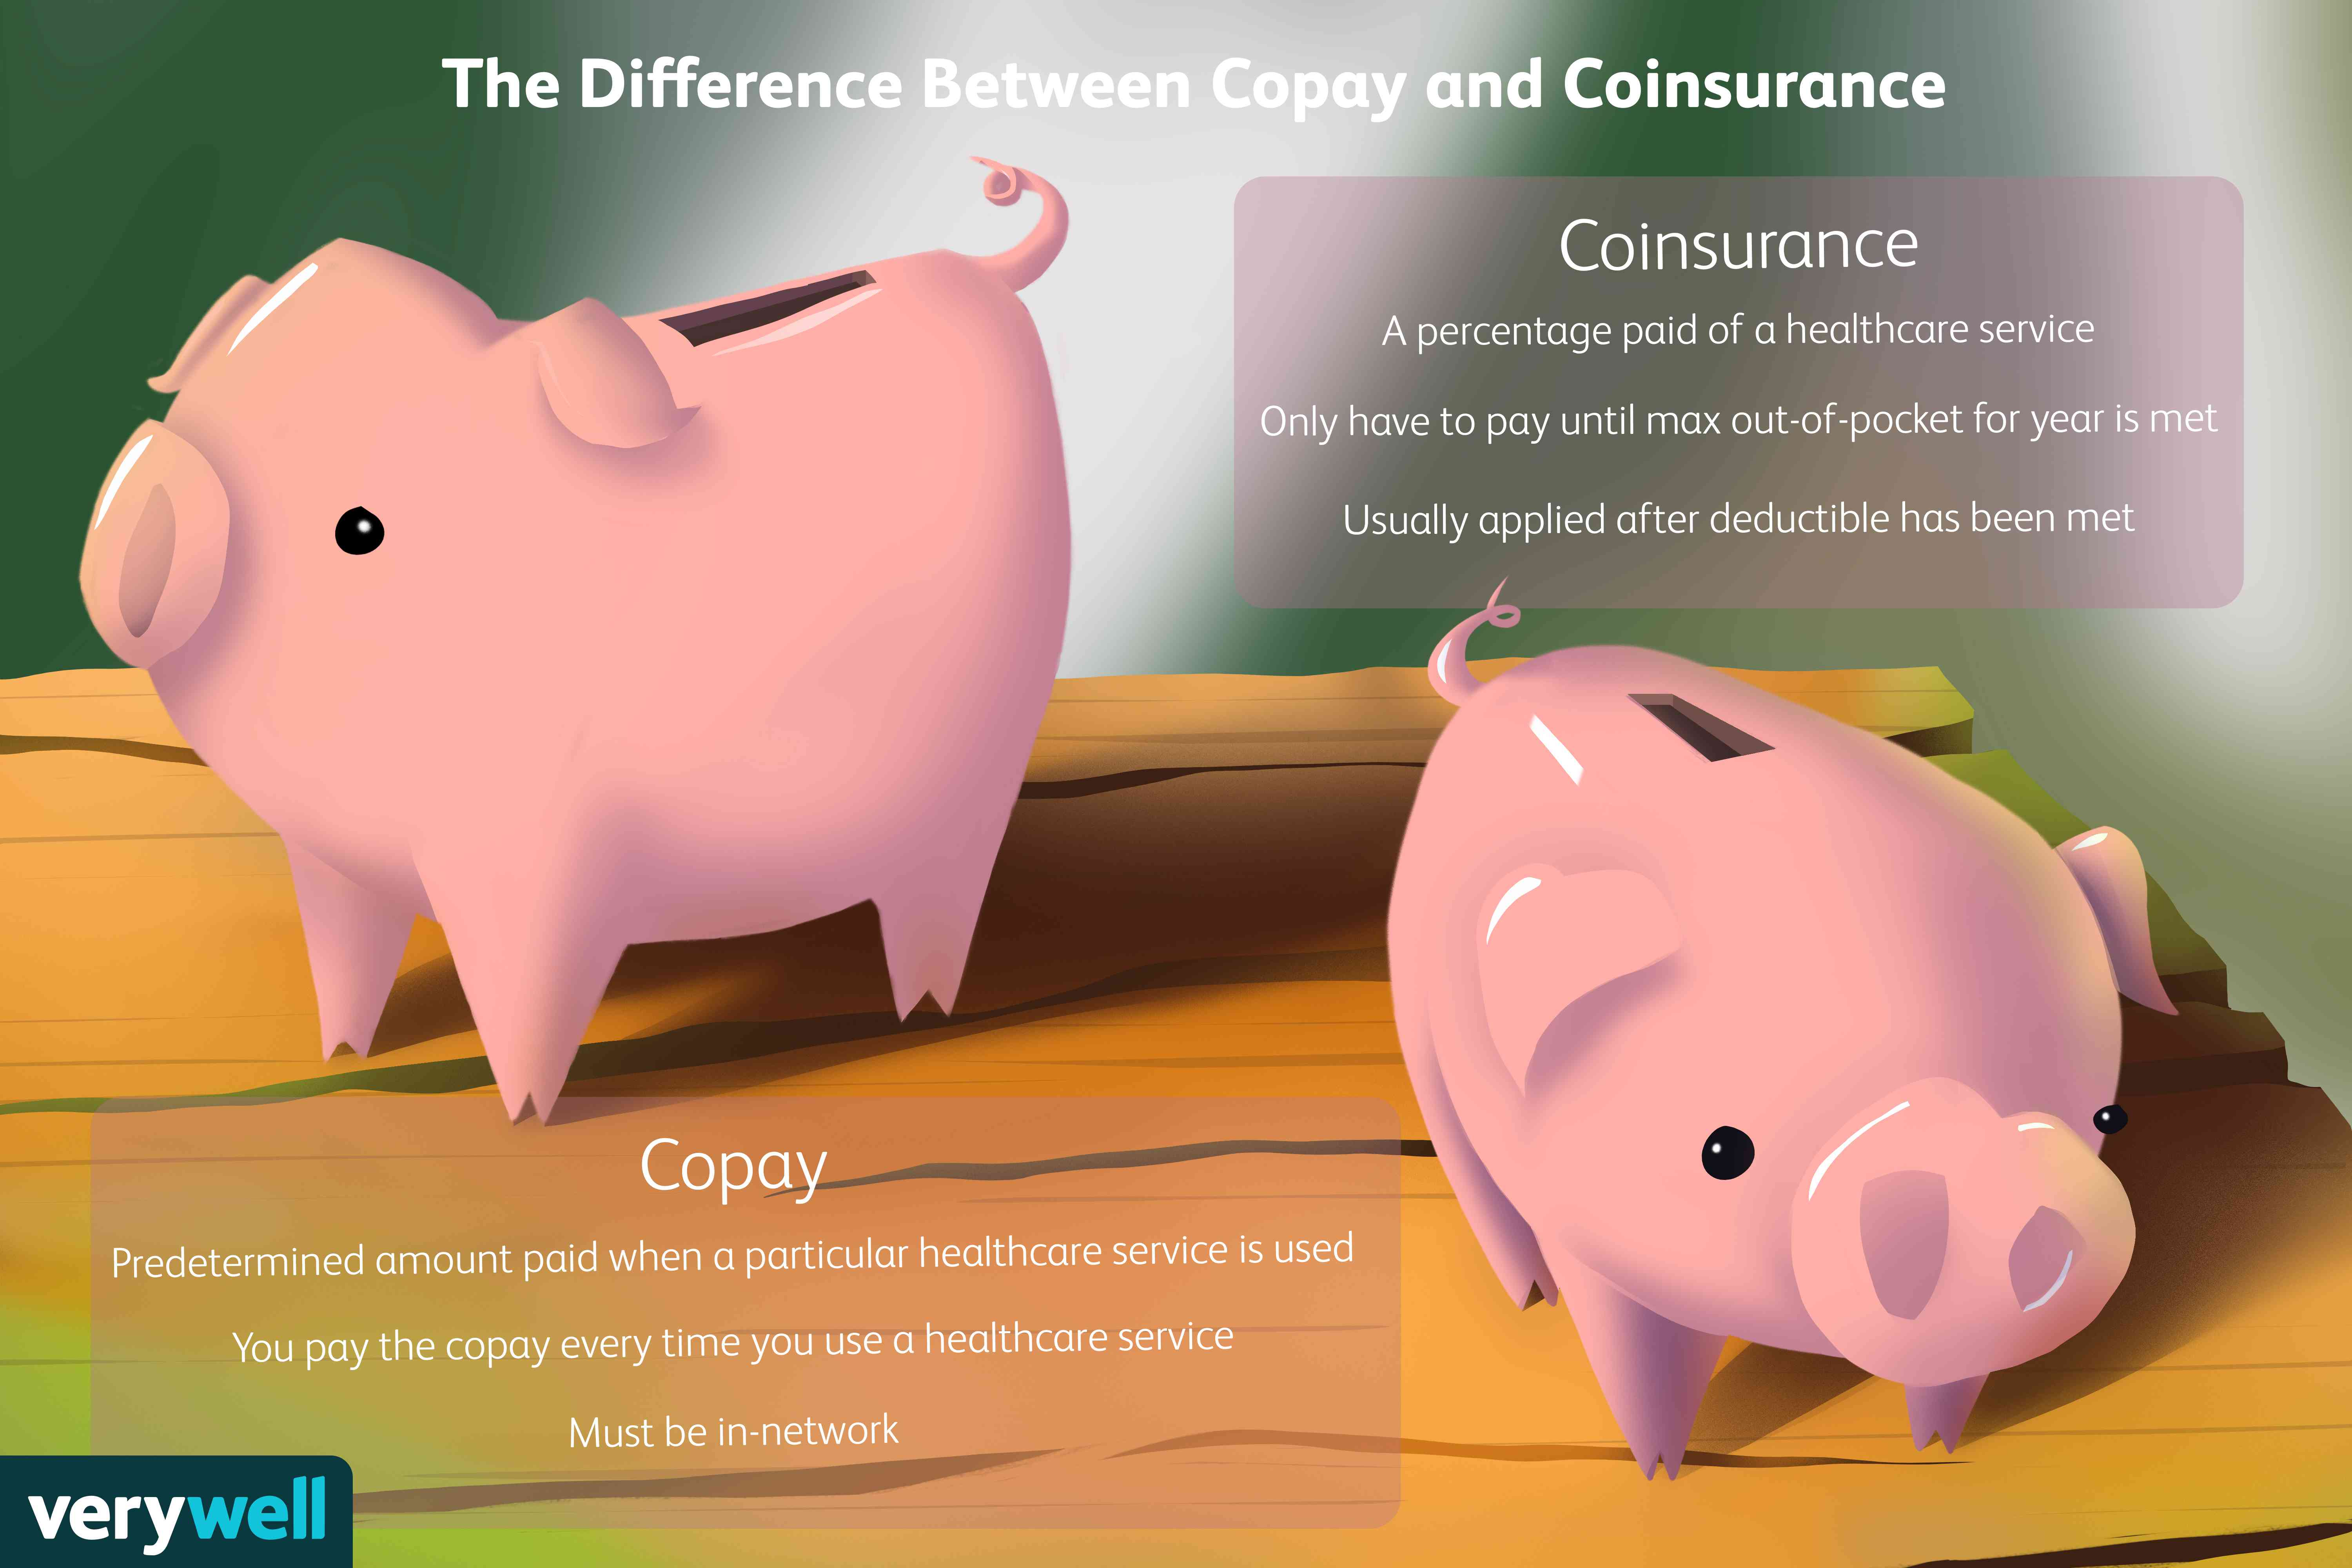 the difference between copay and coinsurance